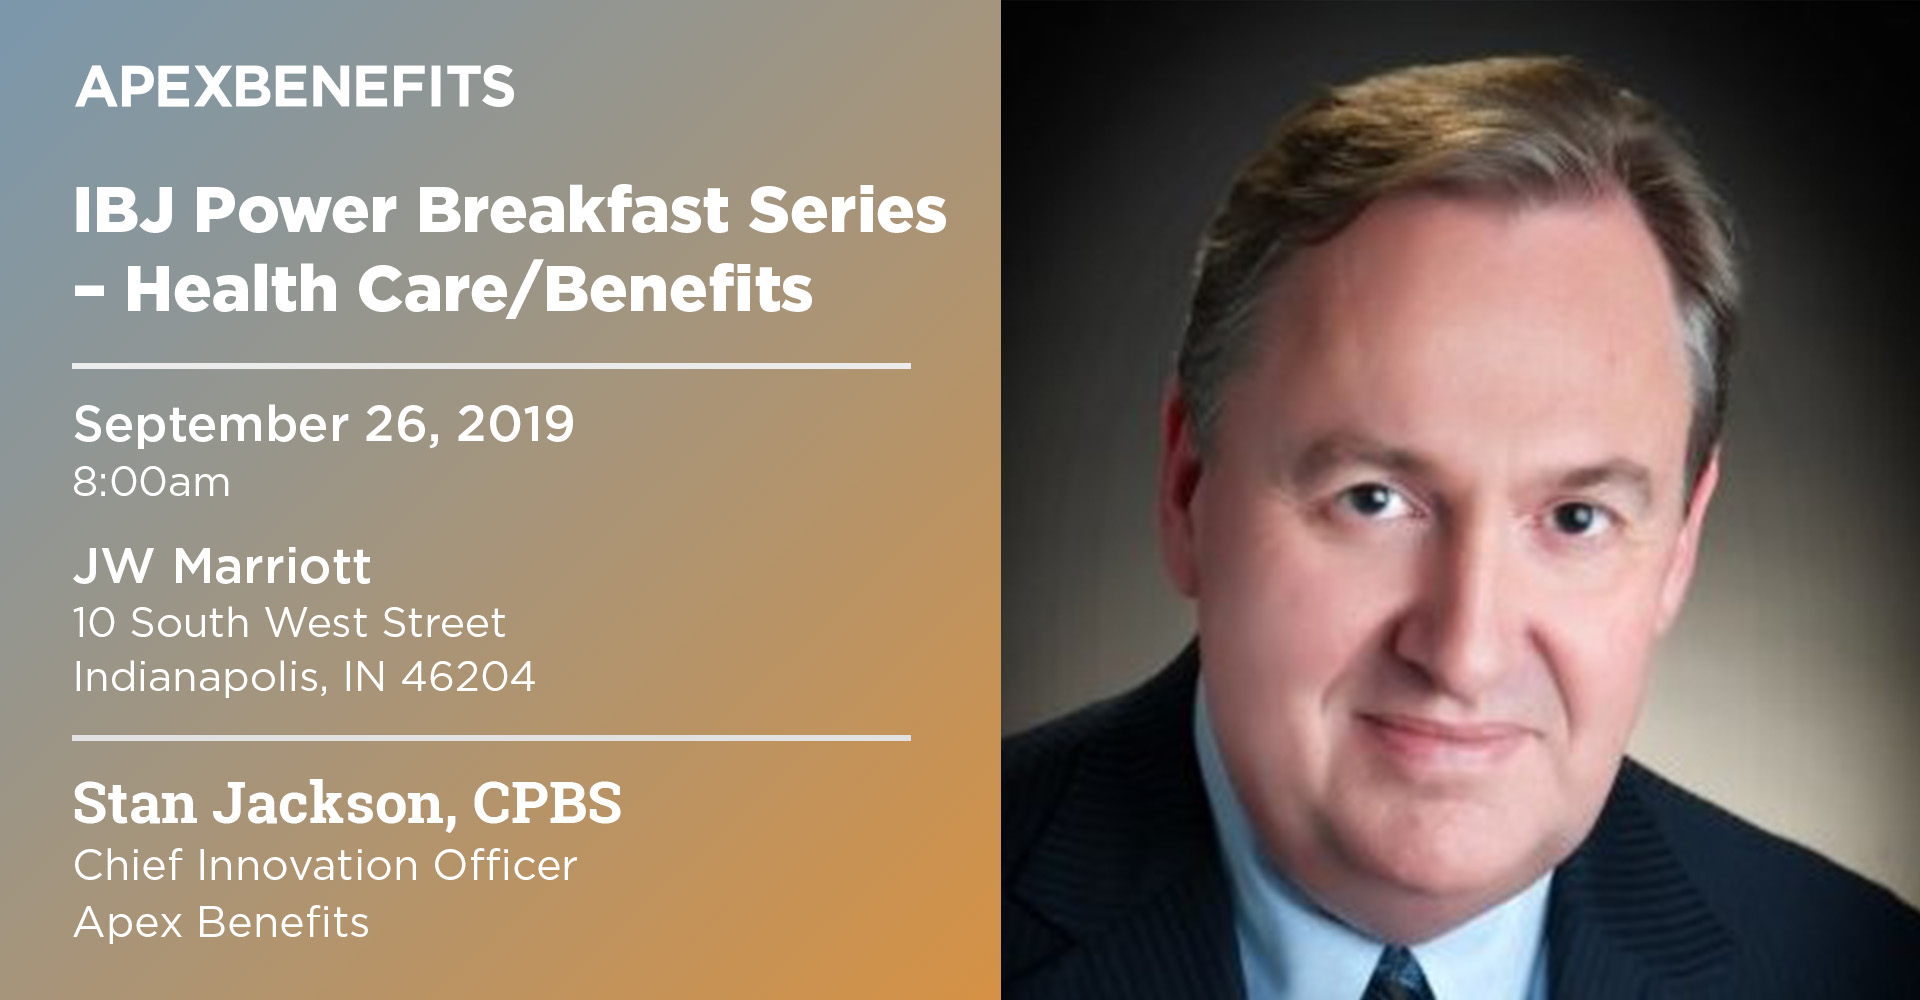 Chief Innovation Officer to Speak at IBJ Power Breakfast Event